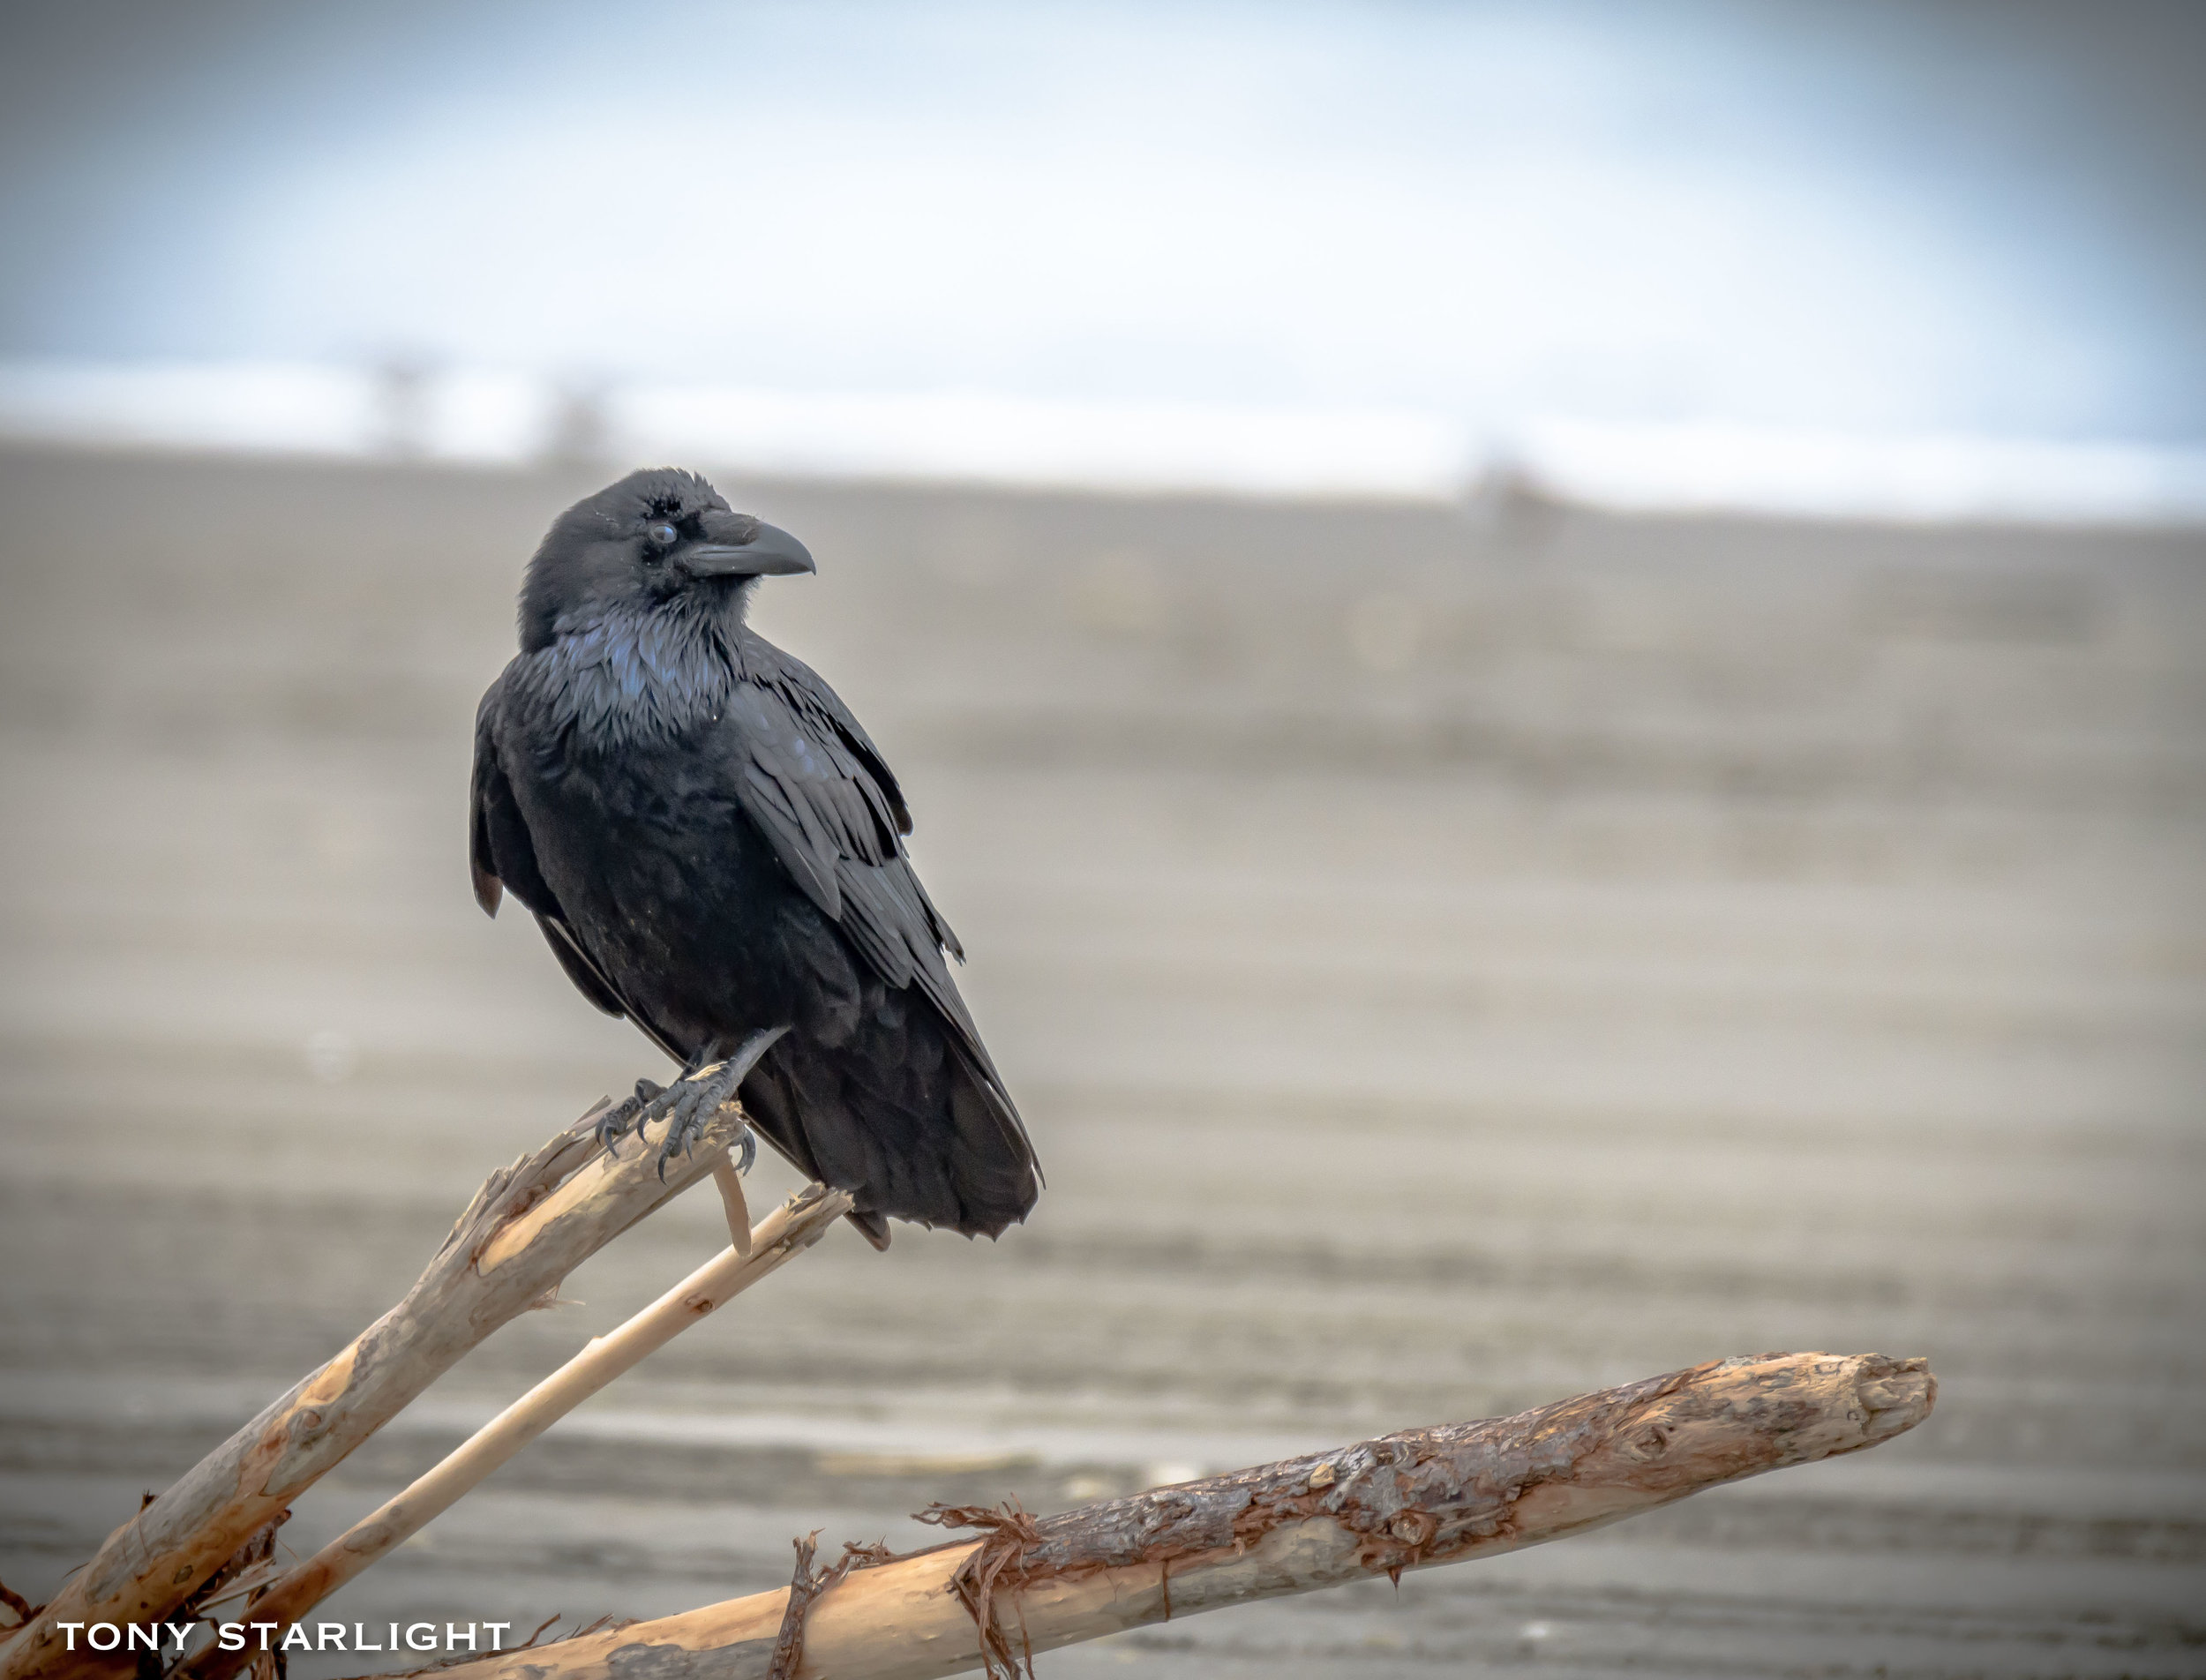 Common Raven - On the beach we mostly find scavengers. This guy was trying to sell me